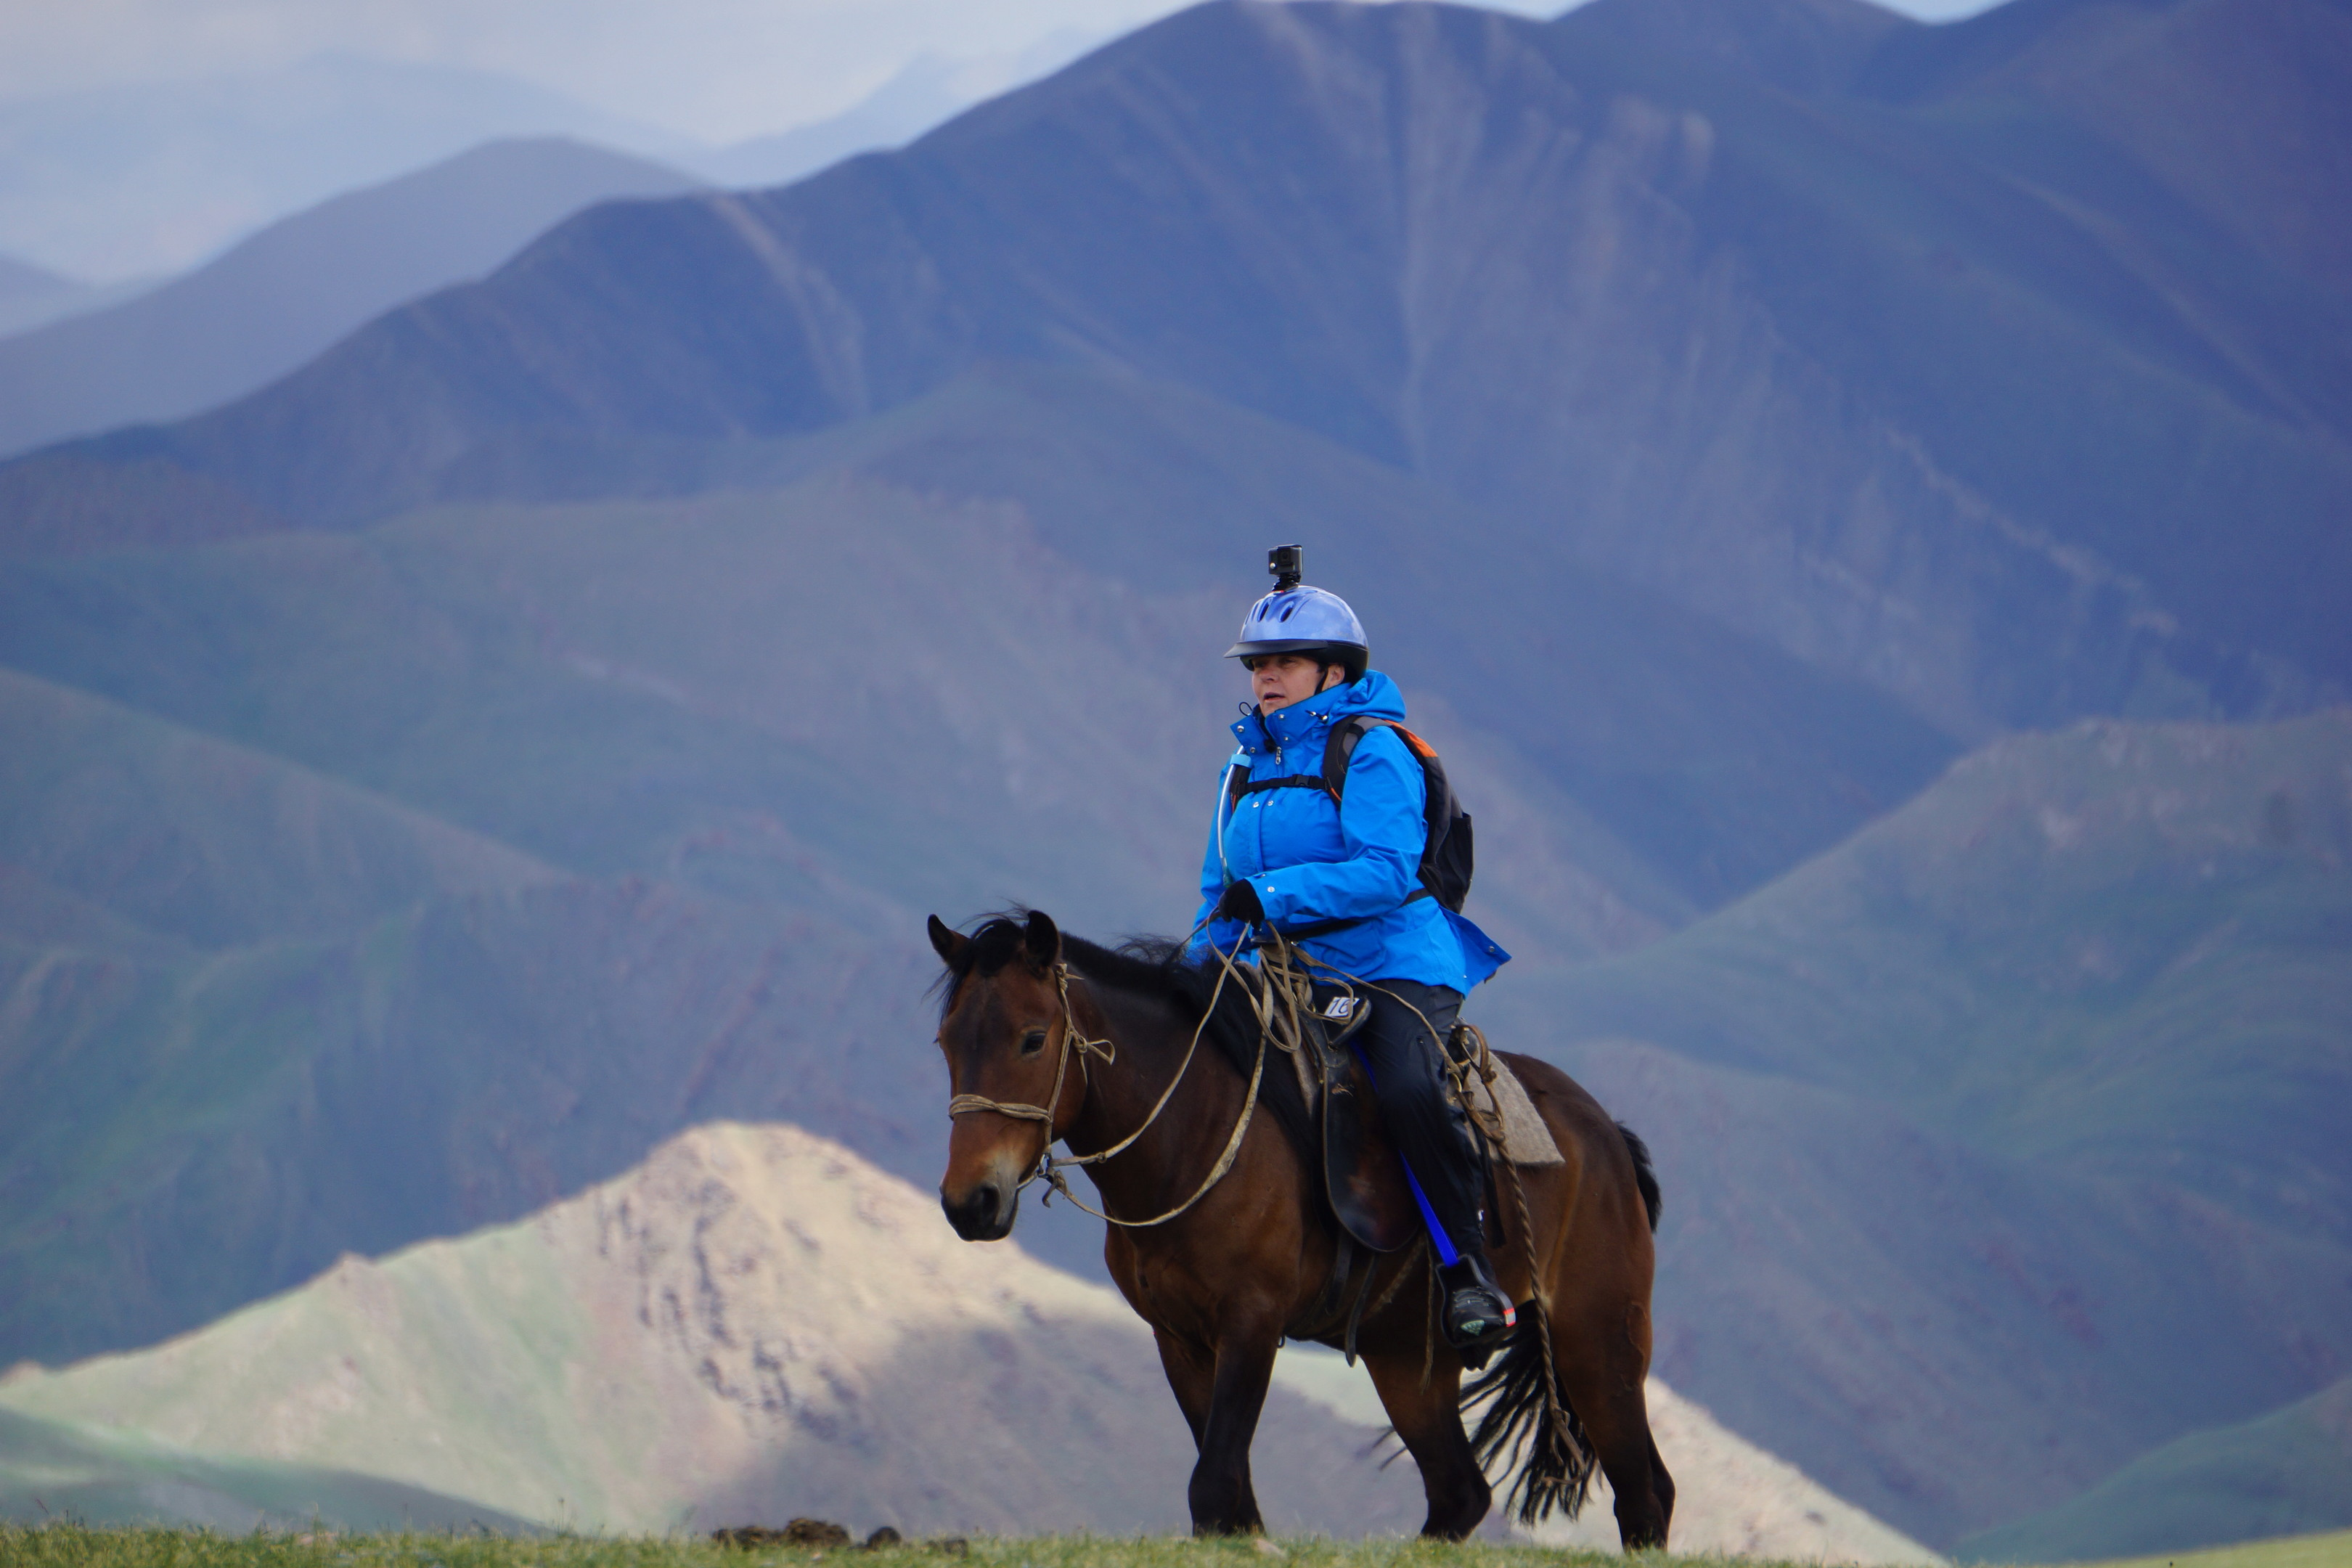 Judith Barker embarked upon a horseback adventure through the mountains of Mongolia